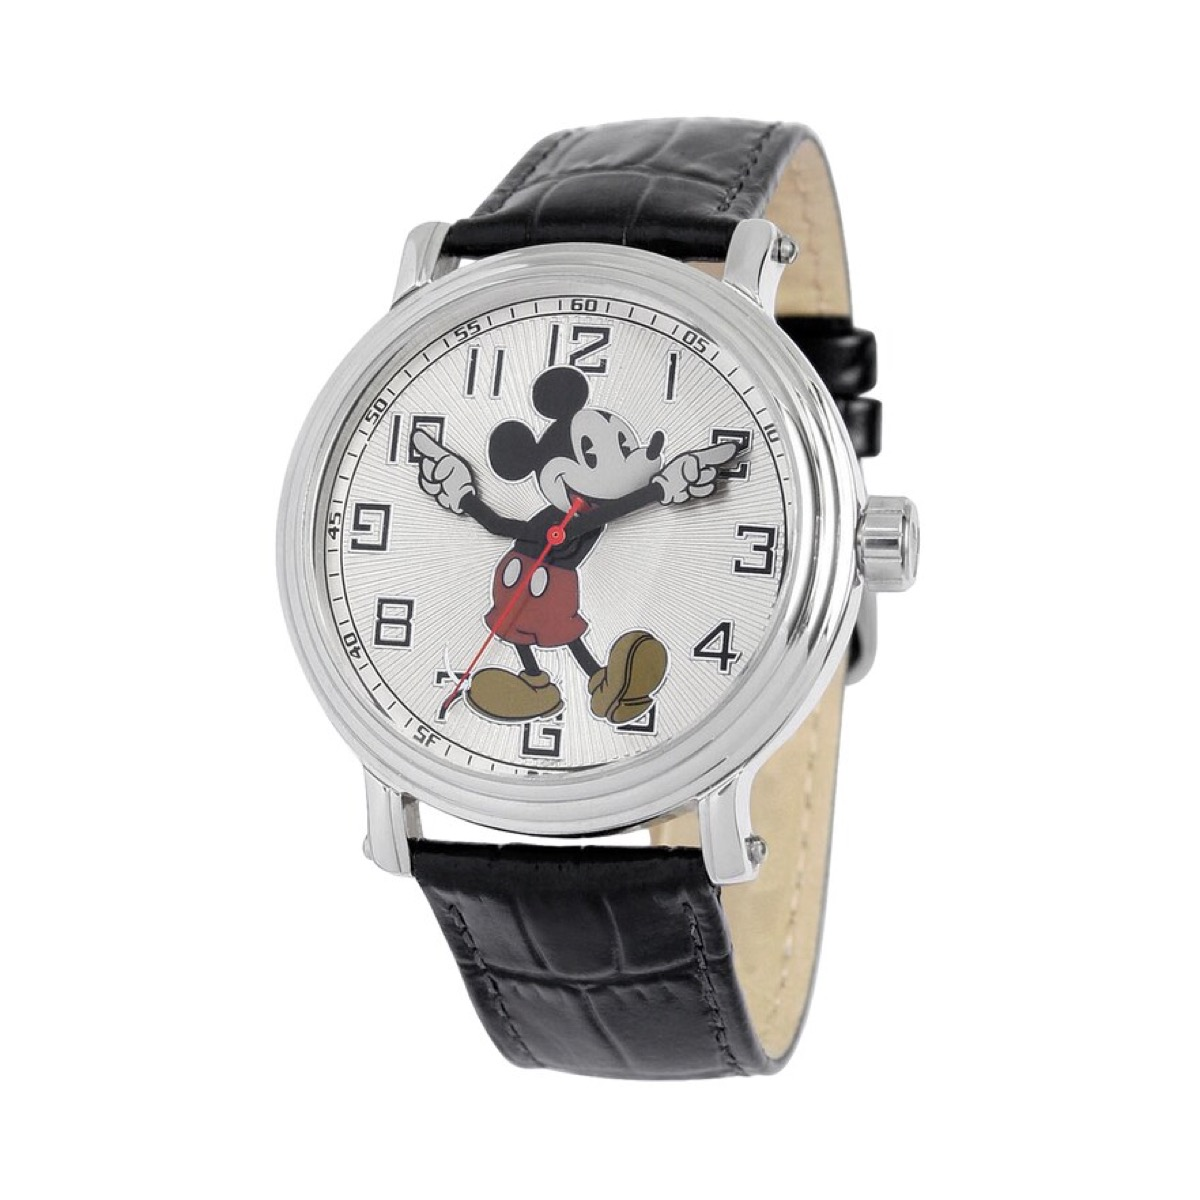 Mickey mouse watch with leather strap